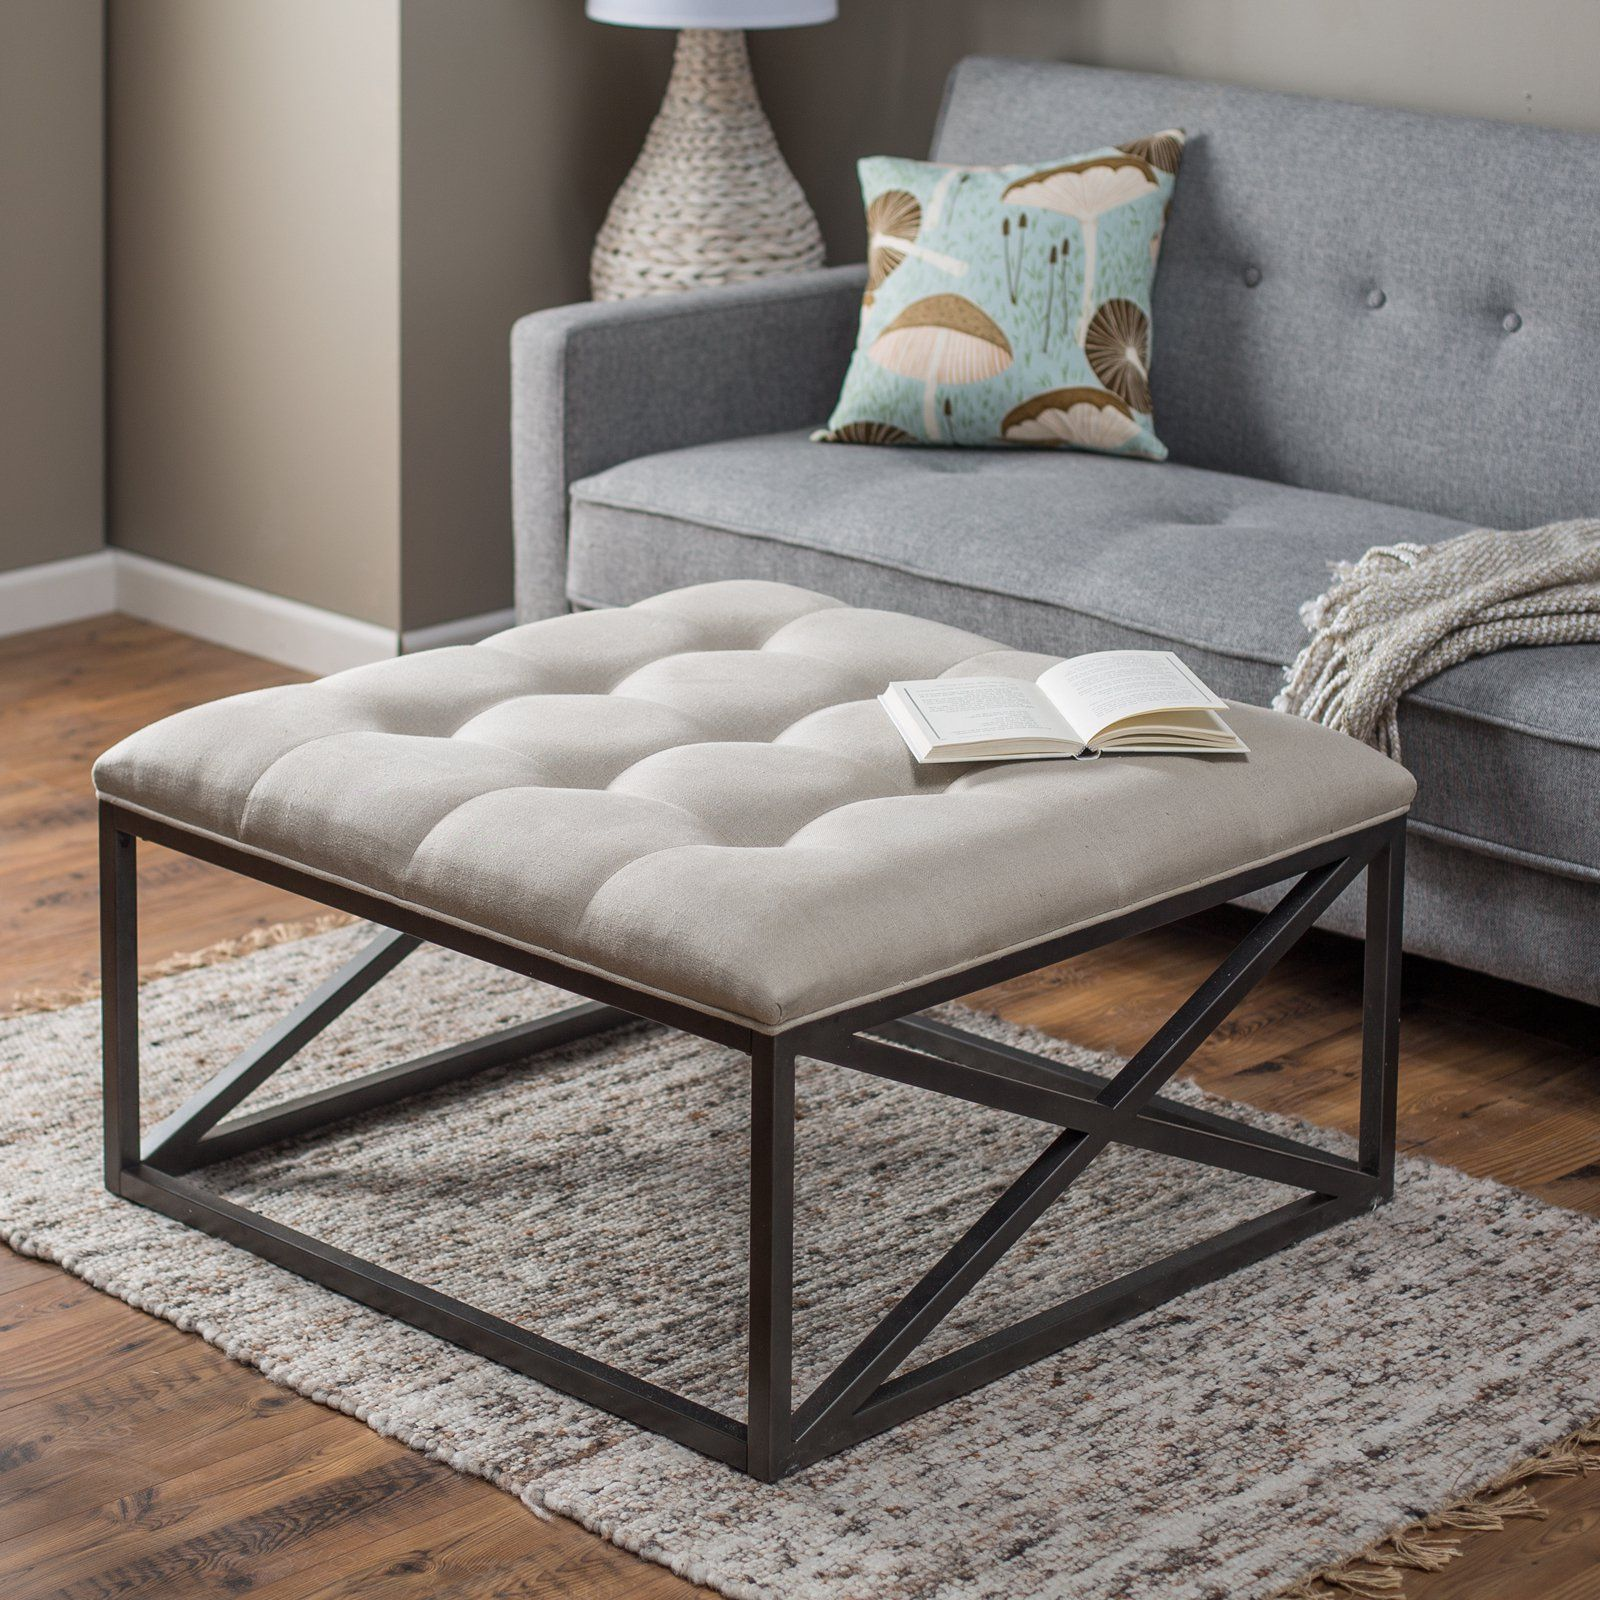 Colorful Ottoman Coffee Table 8 Plush Tufted Ottomans To Add Comfort And Functionality To Your